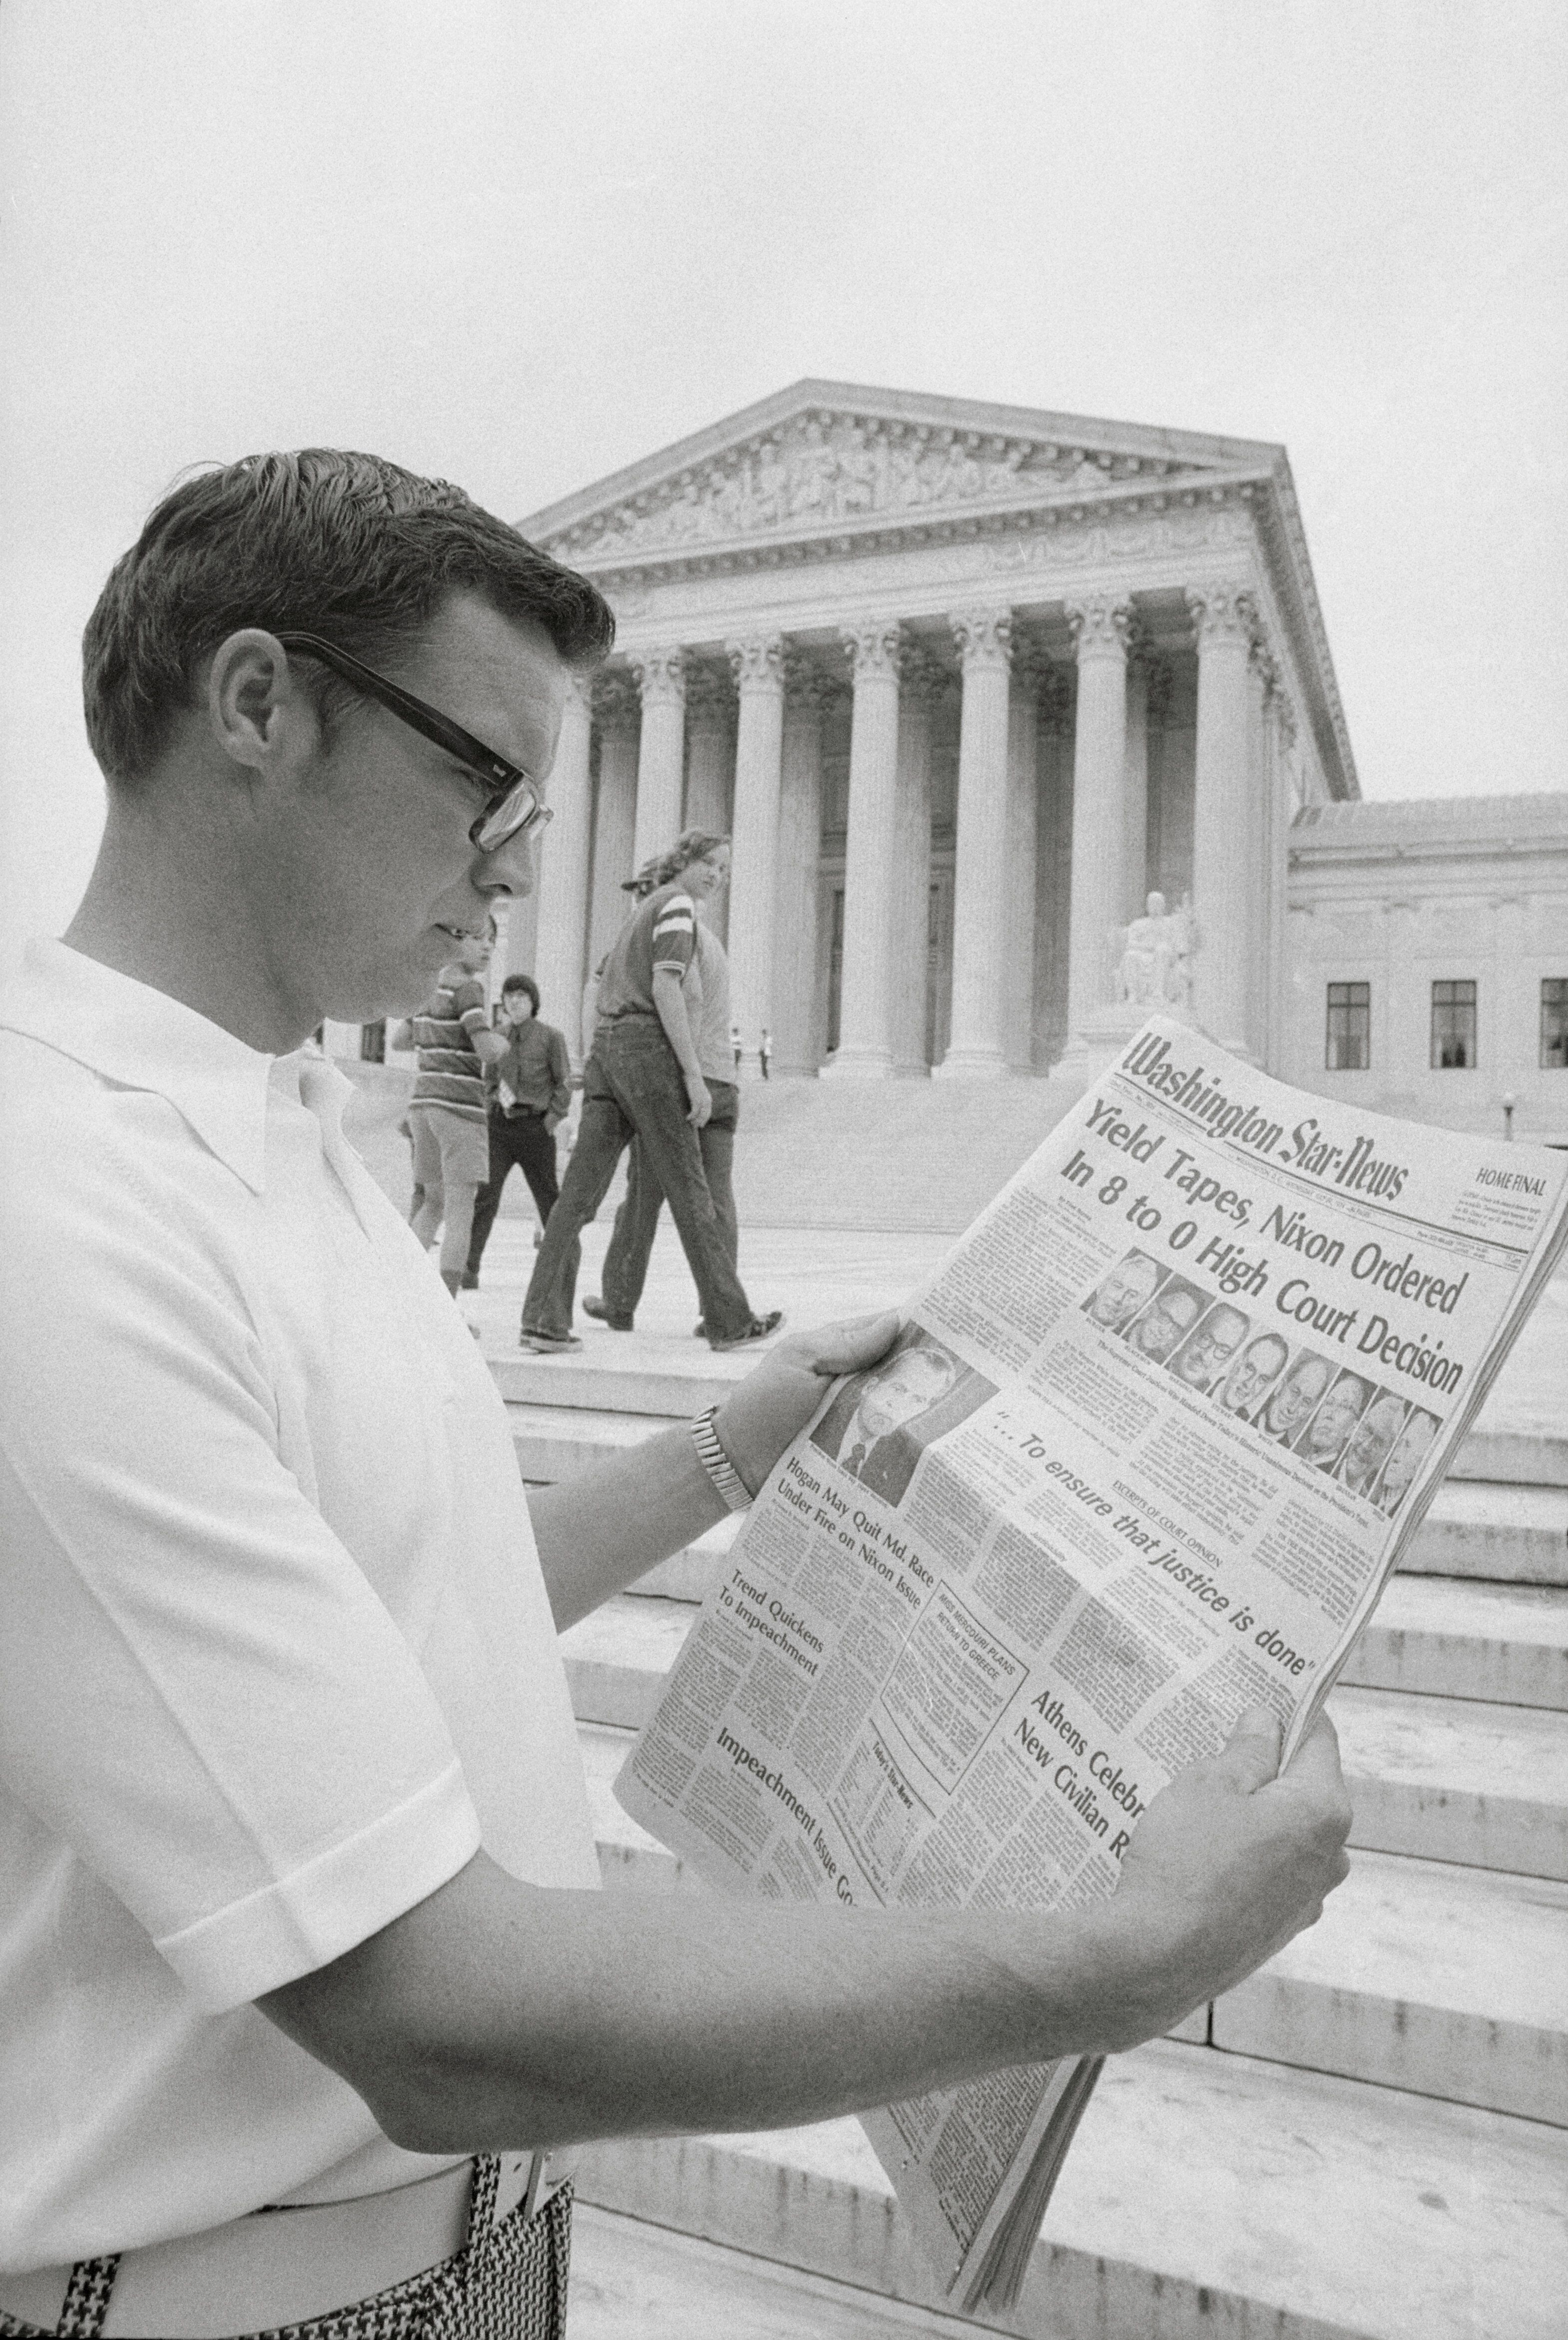 A visitor in the nation's capital reads the headlines in 1974 in front of the Supreme Court telling of the court's ruling ord